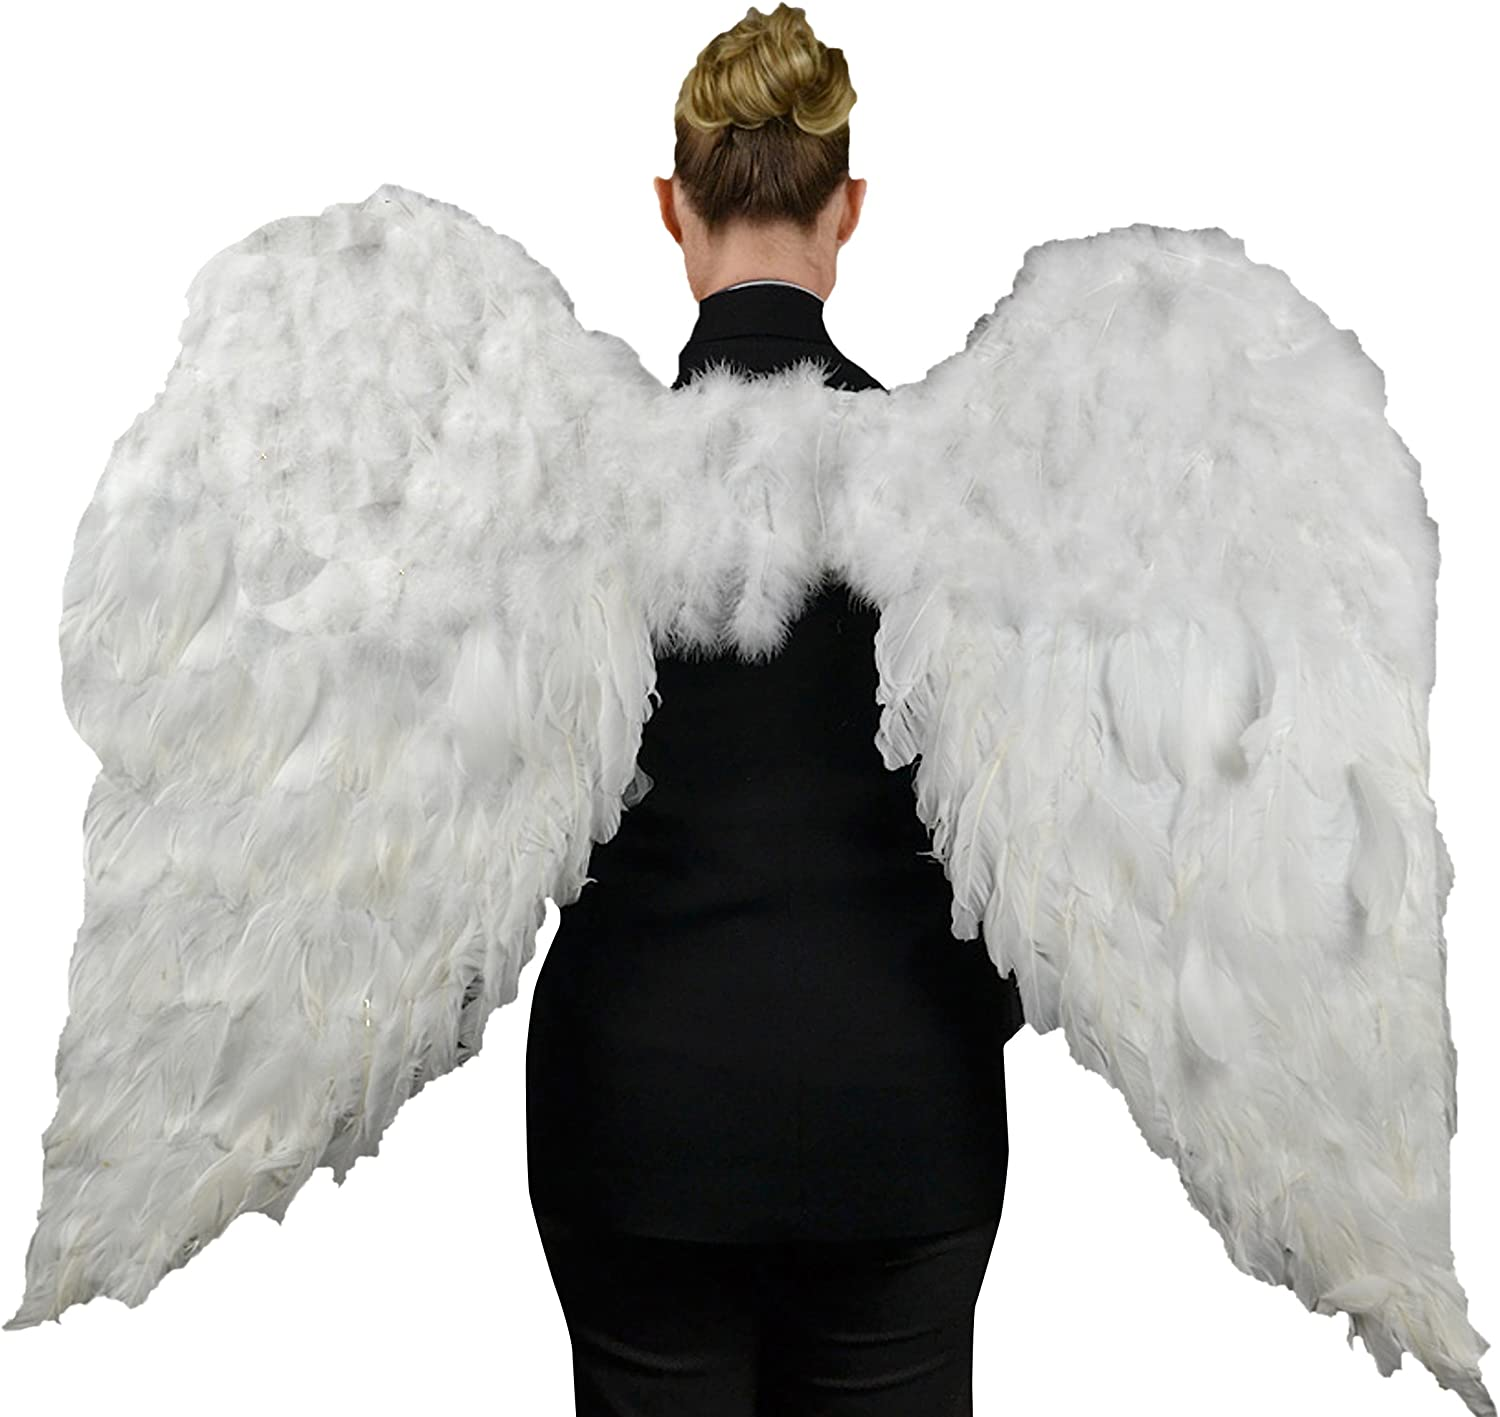 "Touch of Nature White Adult Angel Wings - 52"" by 36"" - Halo Included - White Feather Wing - Costume Wings - Large Angel Wings"